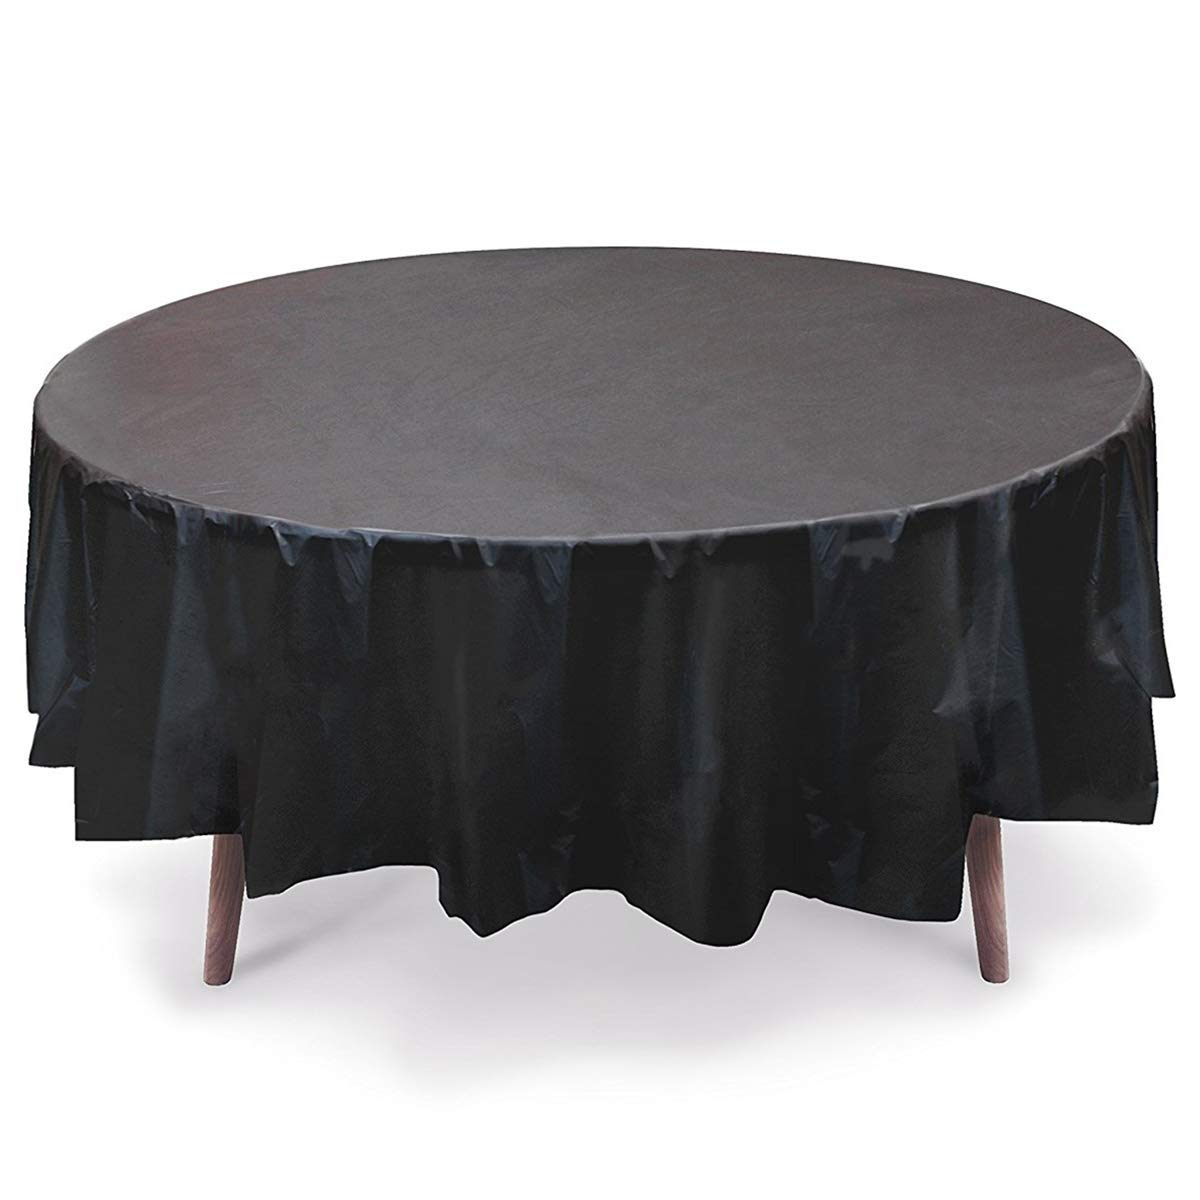 36 Pack Disposable Plastic Tablecloth 84 Inch Round Table Cover Black Table Cloth Protector for Wedding Graduation Birthday Christmas Parties Outdoor Picnic BBQ Buffet Holiday Dinner Large Waterproof by IceFire